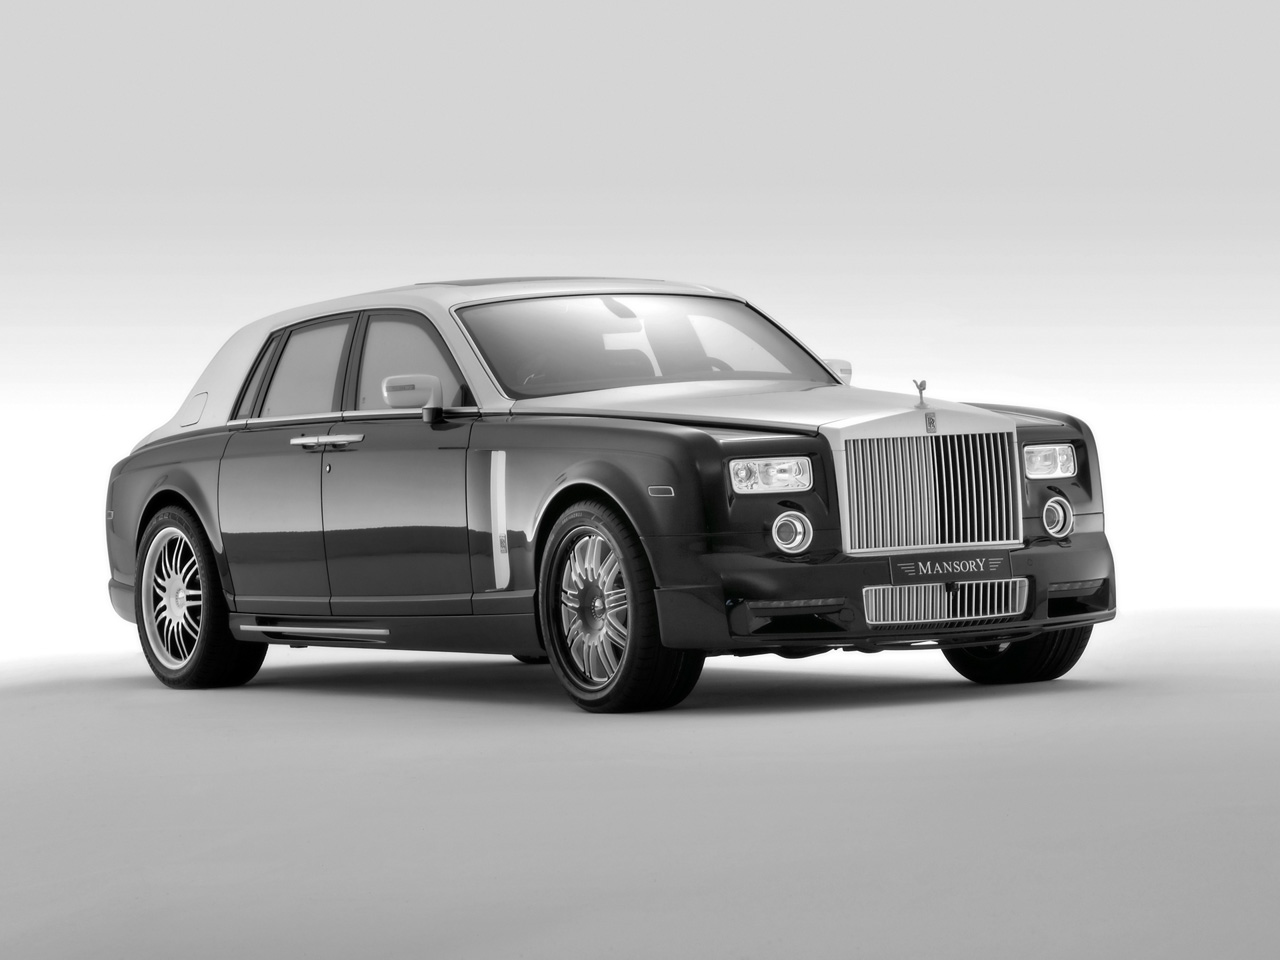 2008 Rolls royce Phantom #2